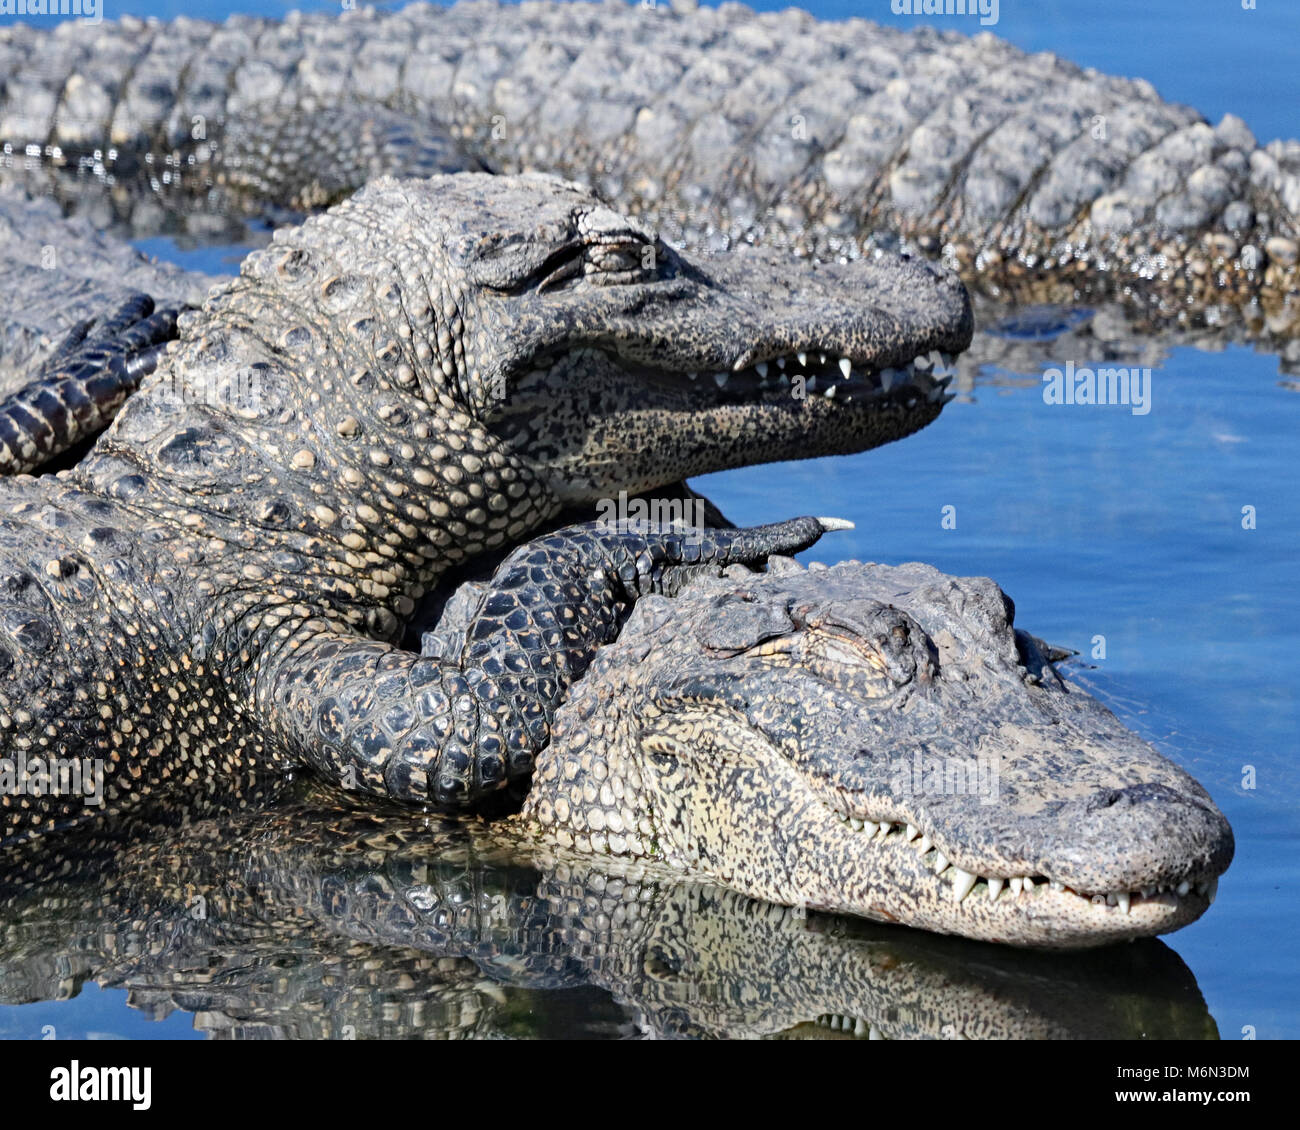 Alligators almost appear to smile as they pile on top of each other at Gatorland, Orlando - Stock Image